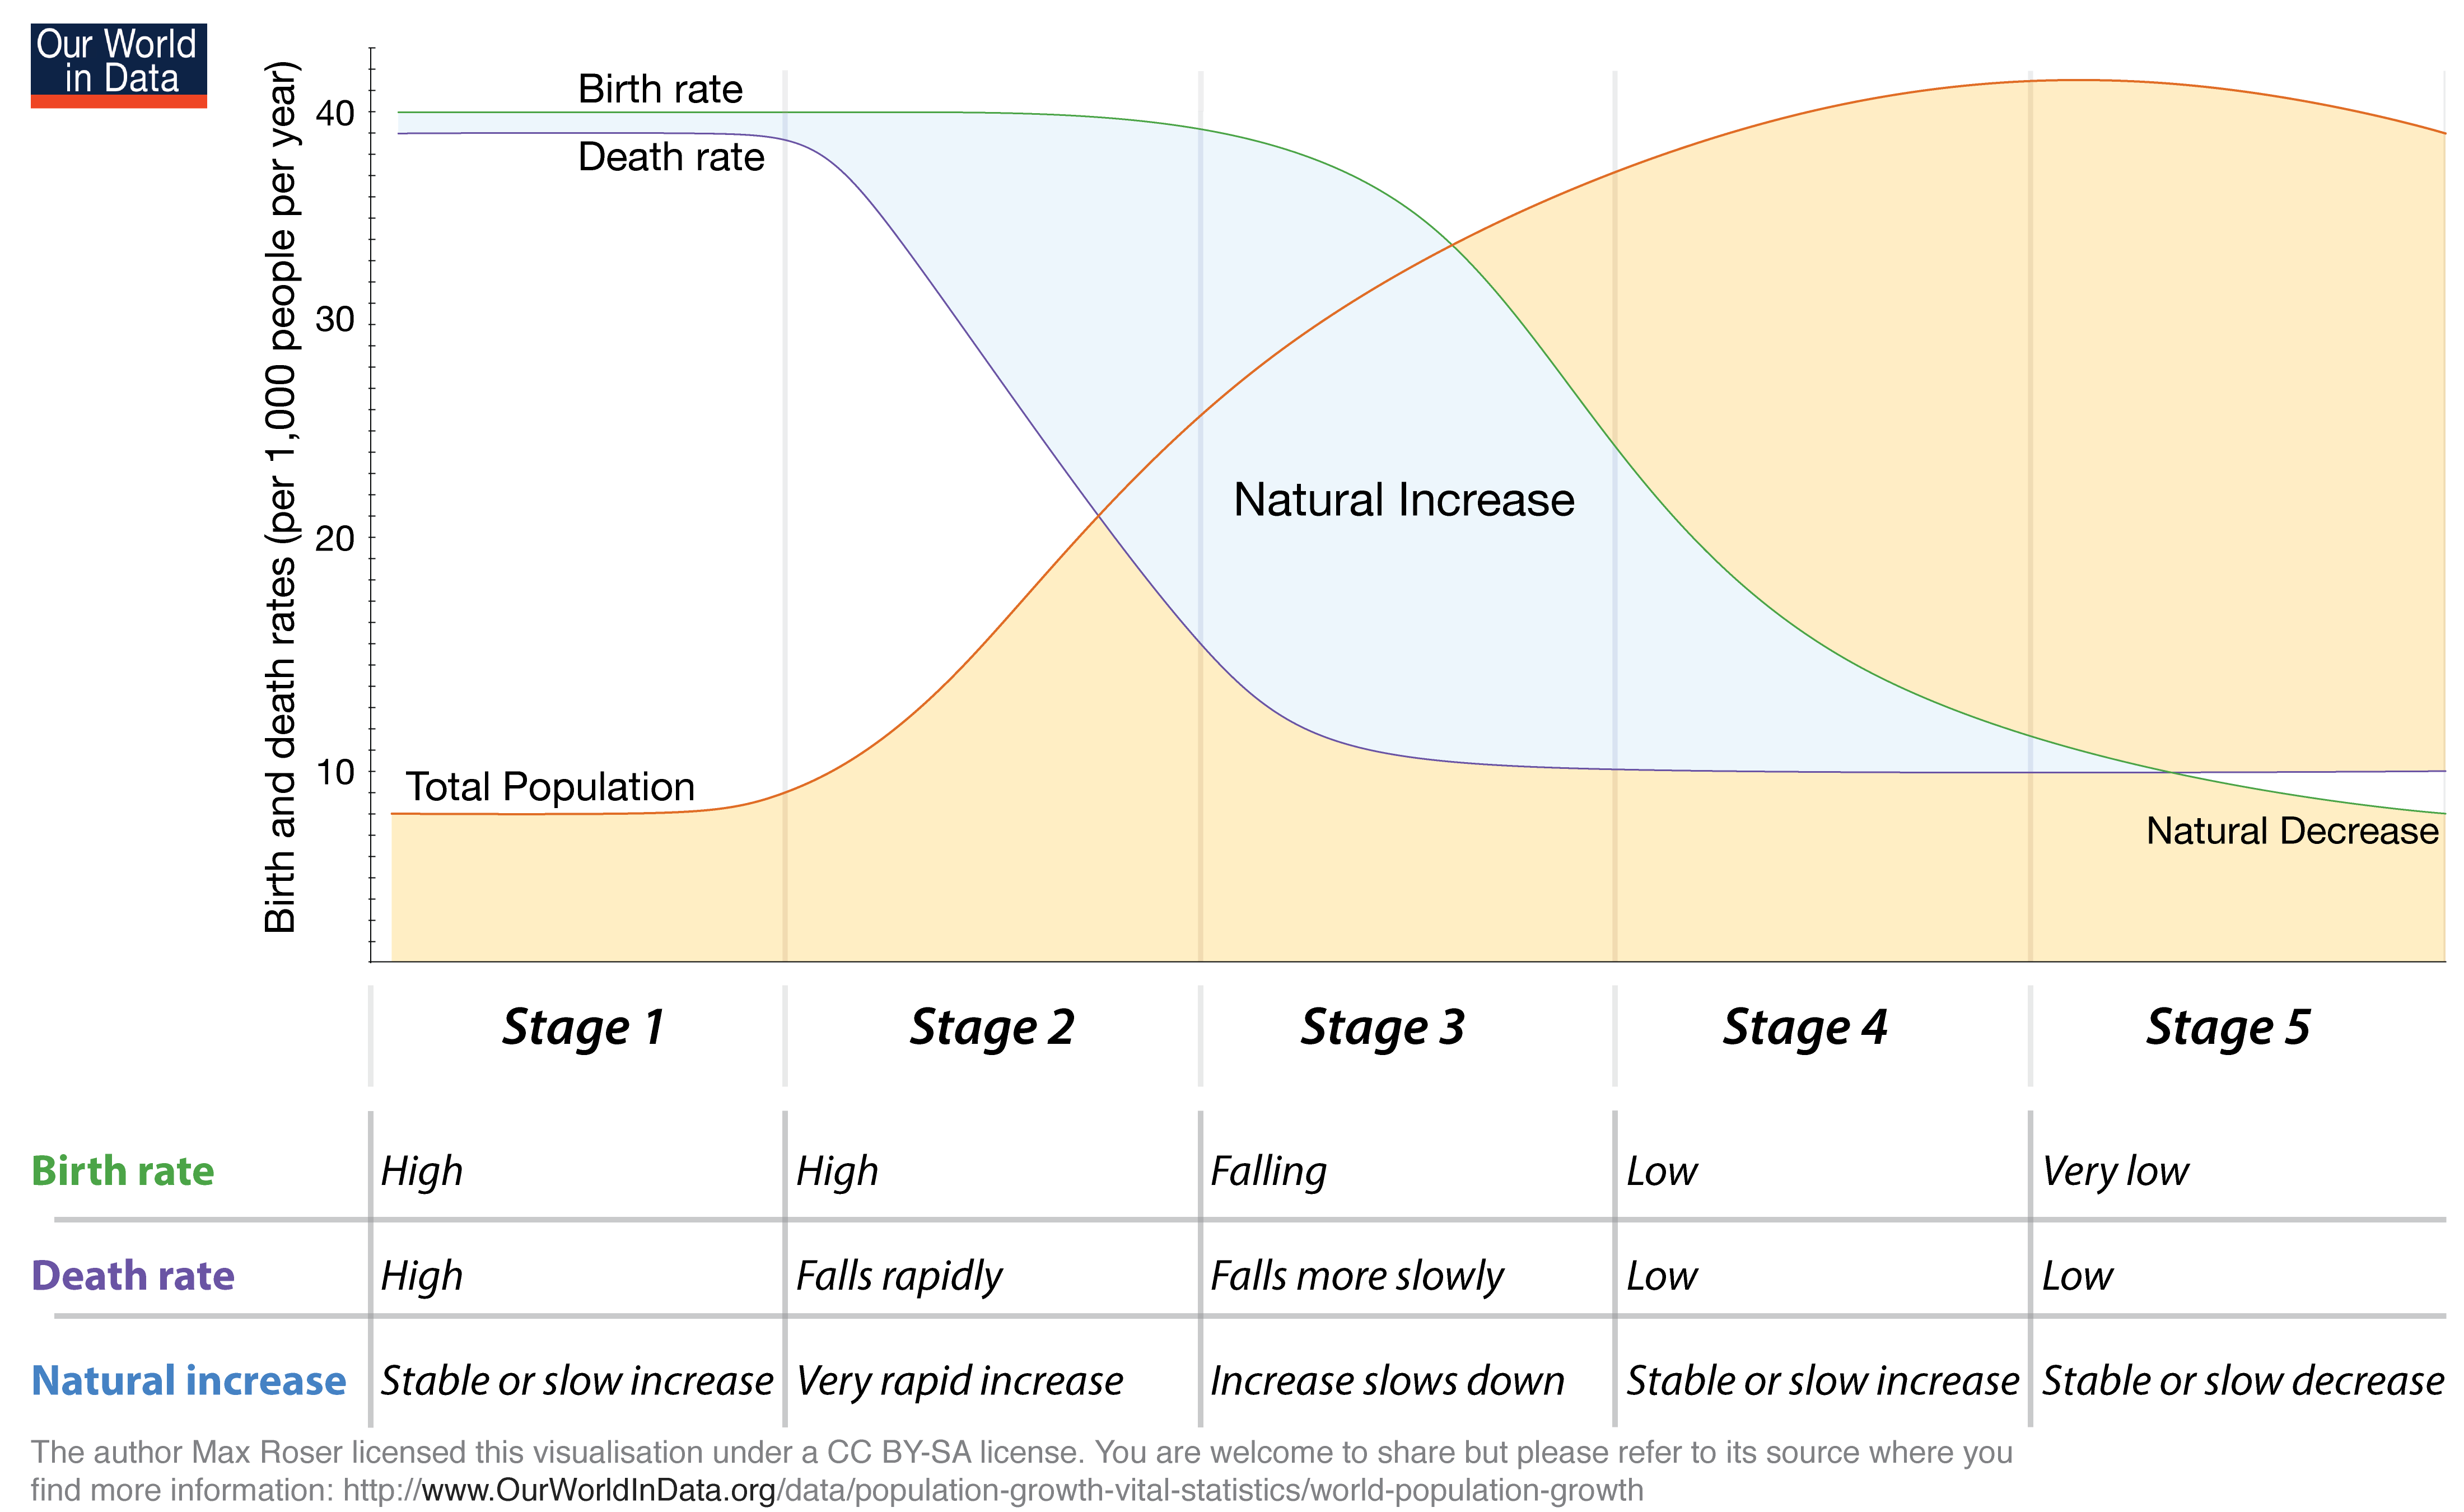 The Demographic Transition Is A Pattern In Which Countries Tend To Transition From High Birth And Death Rates To Lower Birth And Death Rates As They